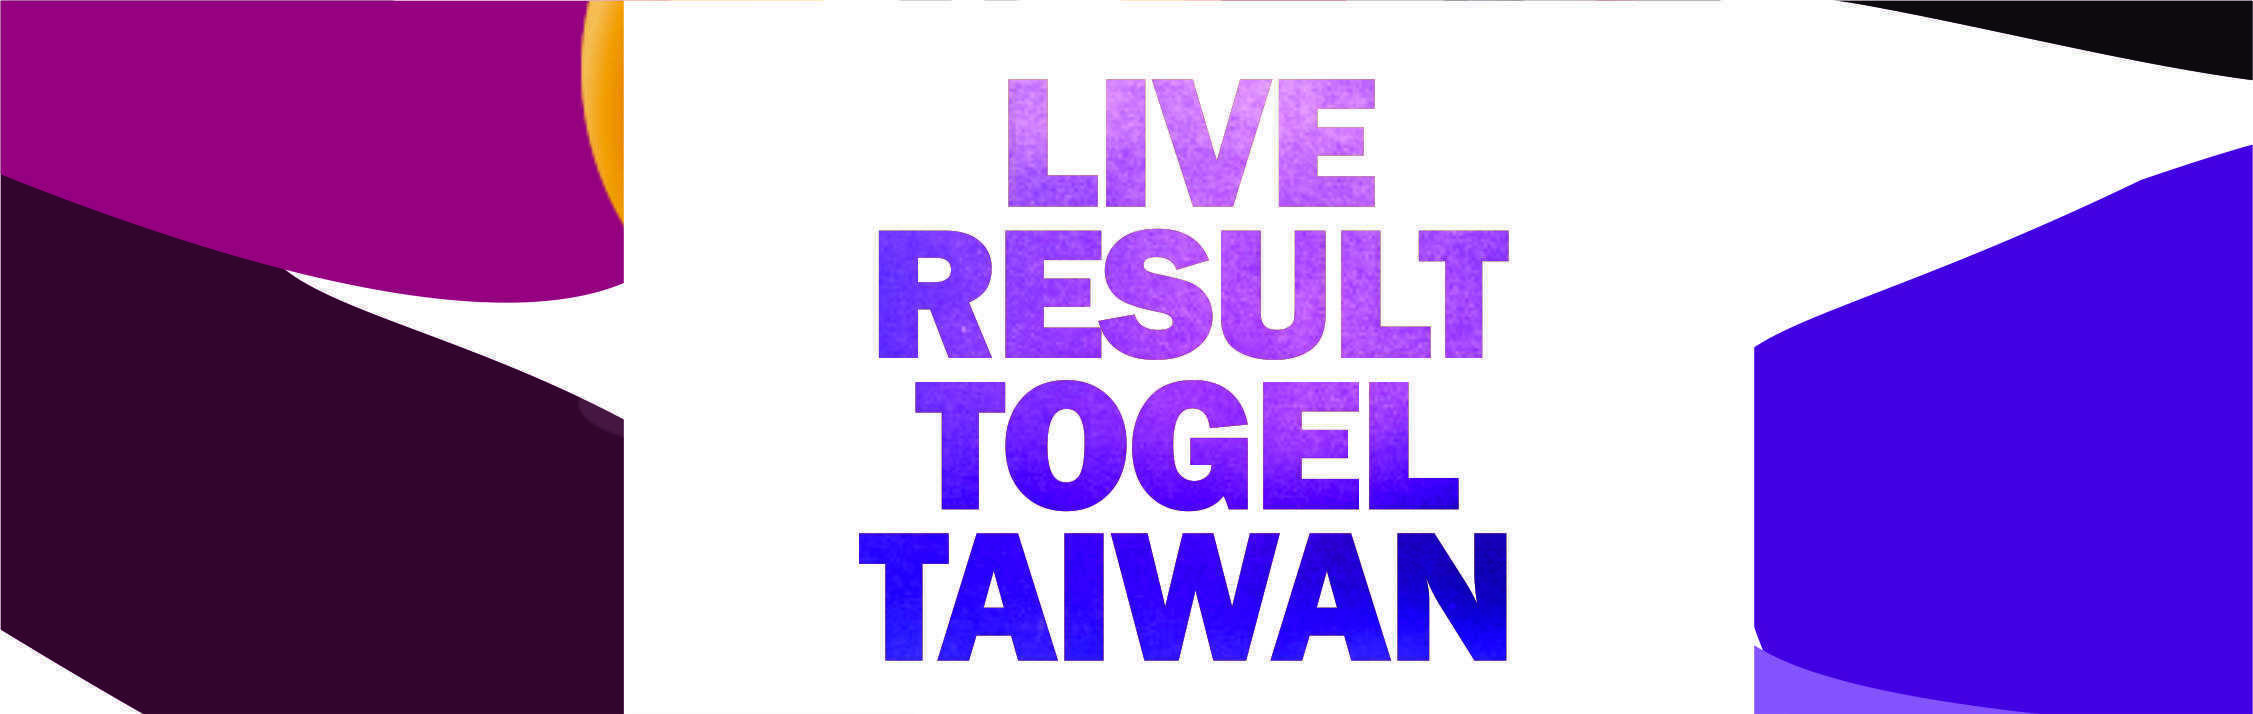 Data Togel China In Togel Scoop It